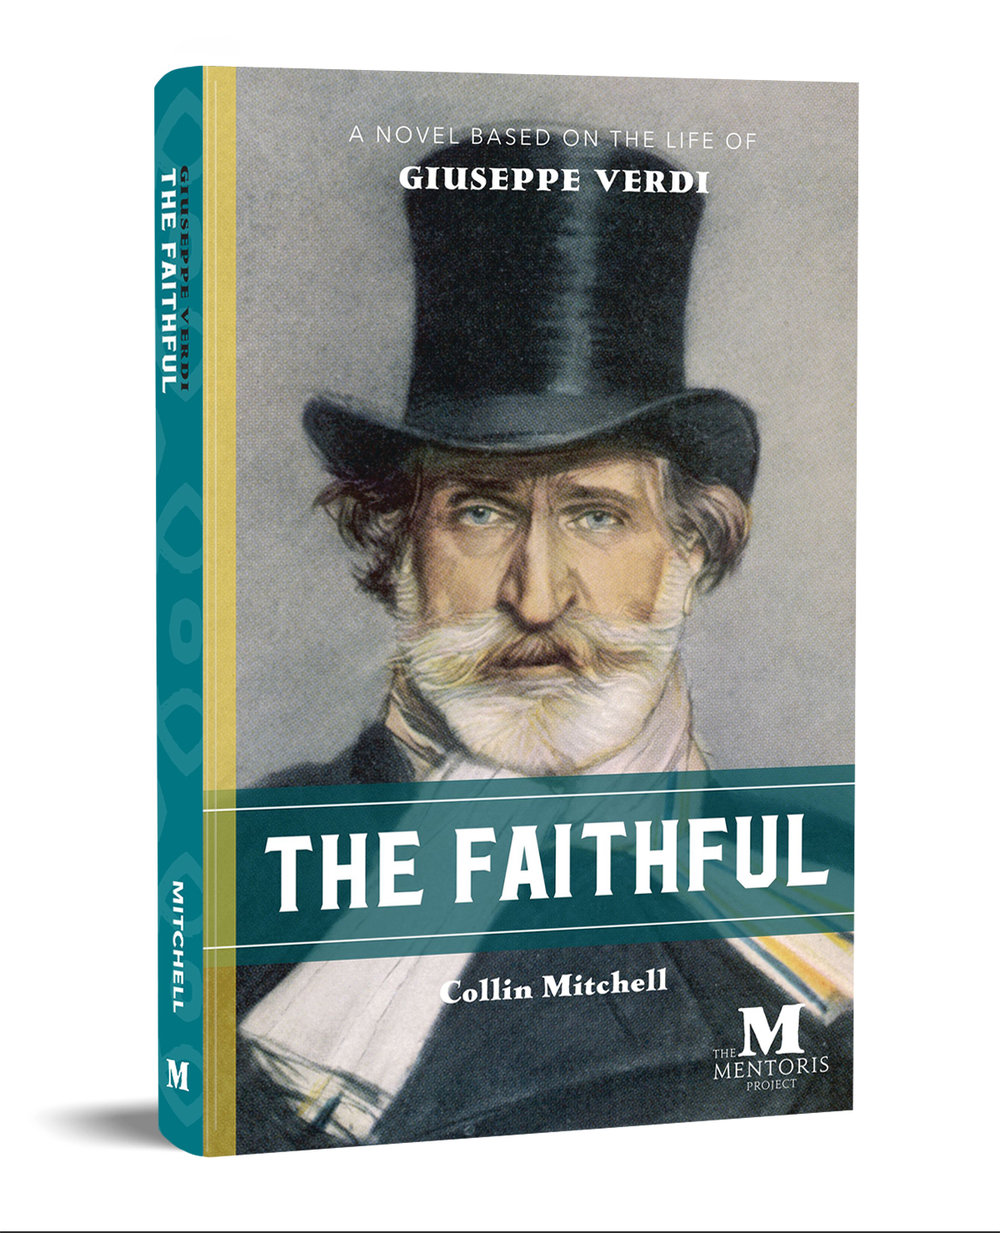 """Writing in a precise,  detailed prose, Mitchell brings warmth and wit to Verdi's story. (When his mentor says, at one point, ""I have some good news right here,"" Verdi quips in response, ""The Austrians have put a moratorium on practicing fugues?"") …Mitchell has managed to enliven the life of Verdi by fleshing out the characters and truly dramatizing the events. Similarly, the author celebrates his subject's flaws in a way that keeps the book from reading like a hagiography.""  —   Kirkus Reviews"